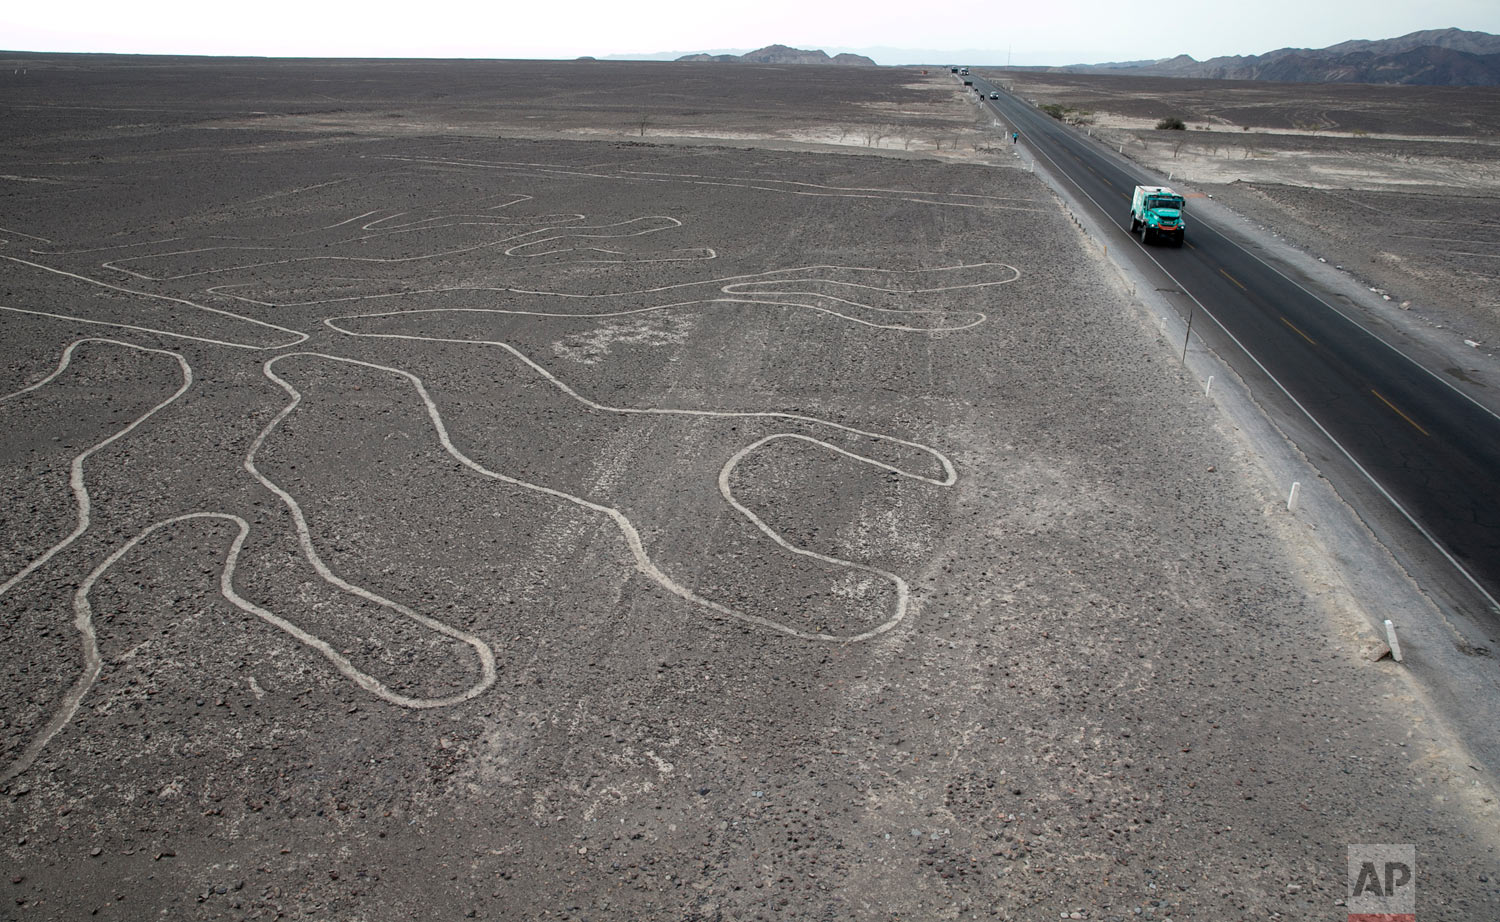 Driver Gerard De Rooy, of Netherlands, and co-drivers Darek Rodewald, of Poland, and Moises Torrallardona, of Spain, drive their Iveco truck on the Pan American highway along the Nazca Lines geoglyphs in Nazca, Peru, after finishing second in the second stage of the Dakar Rally between Pisco and San Juan de Marcona, Jan. 8, 2019. (AP Photo/Ricardo Mazalan)